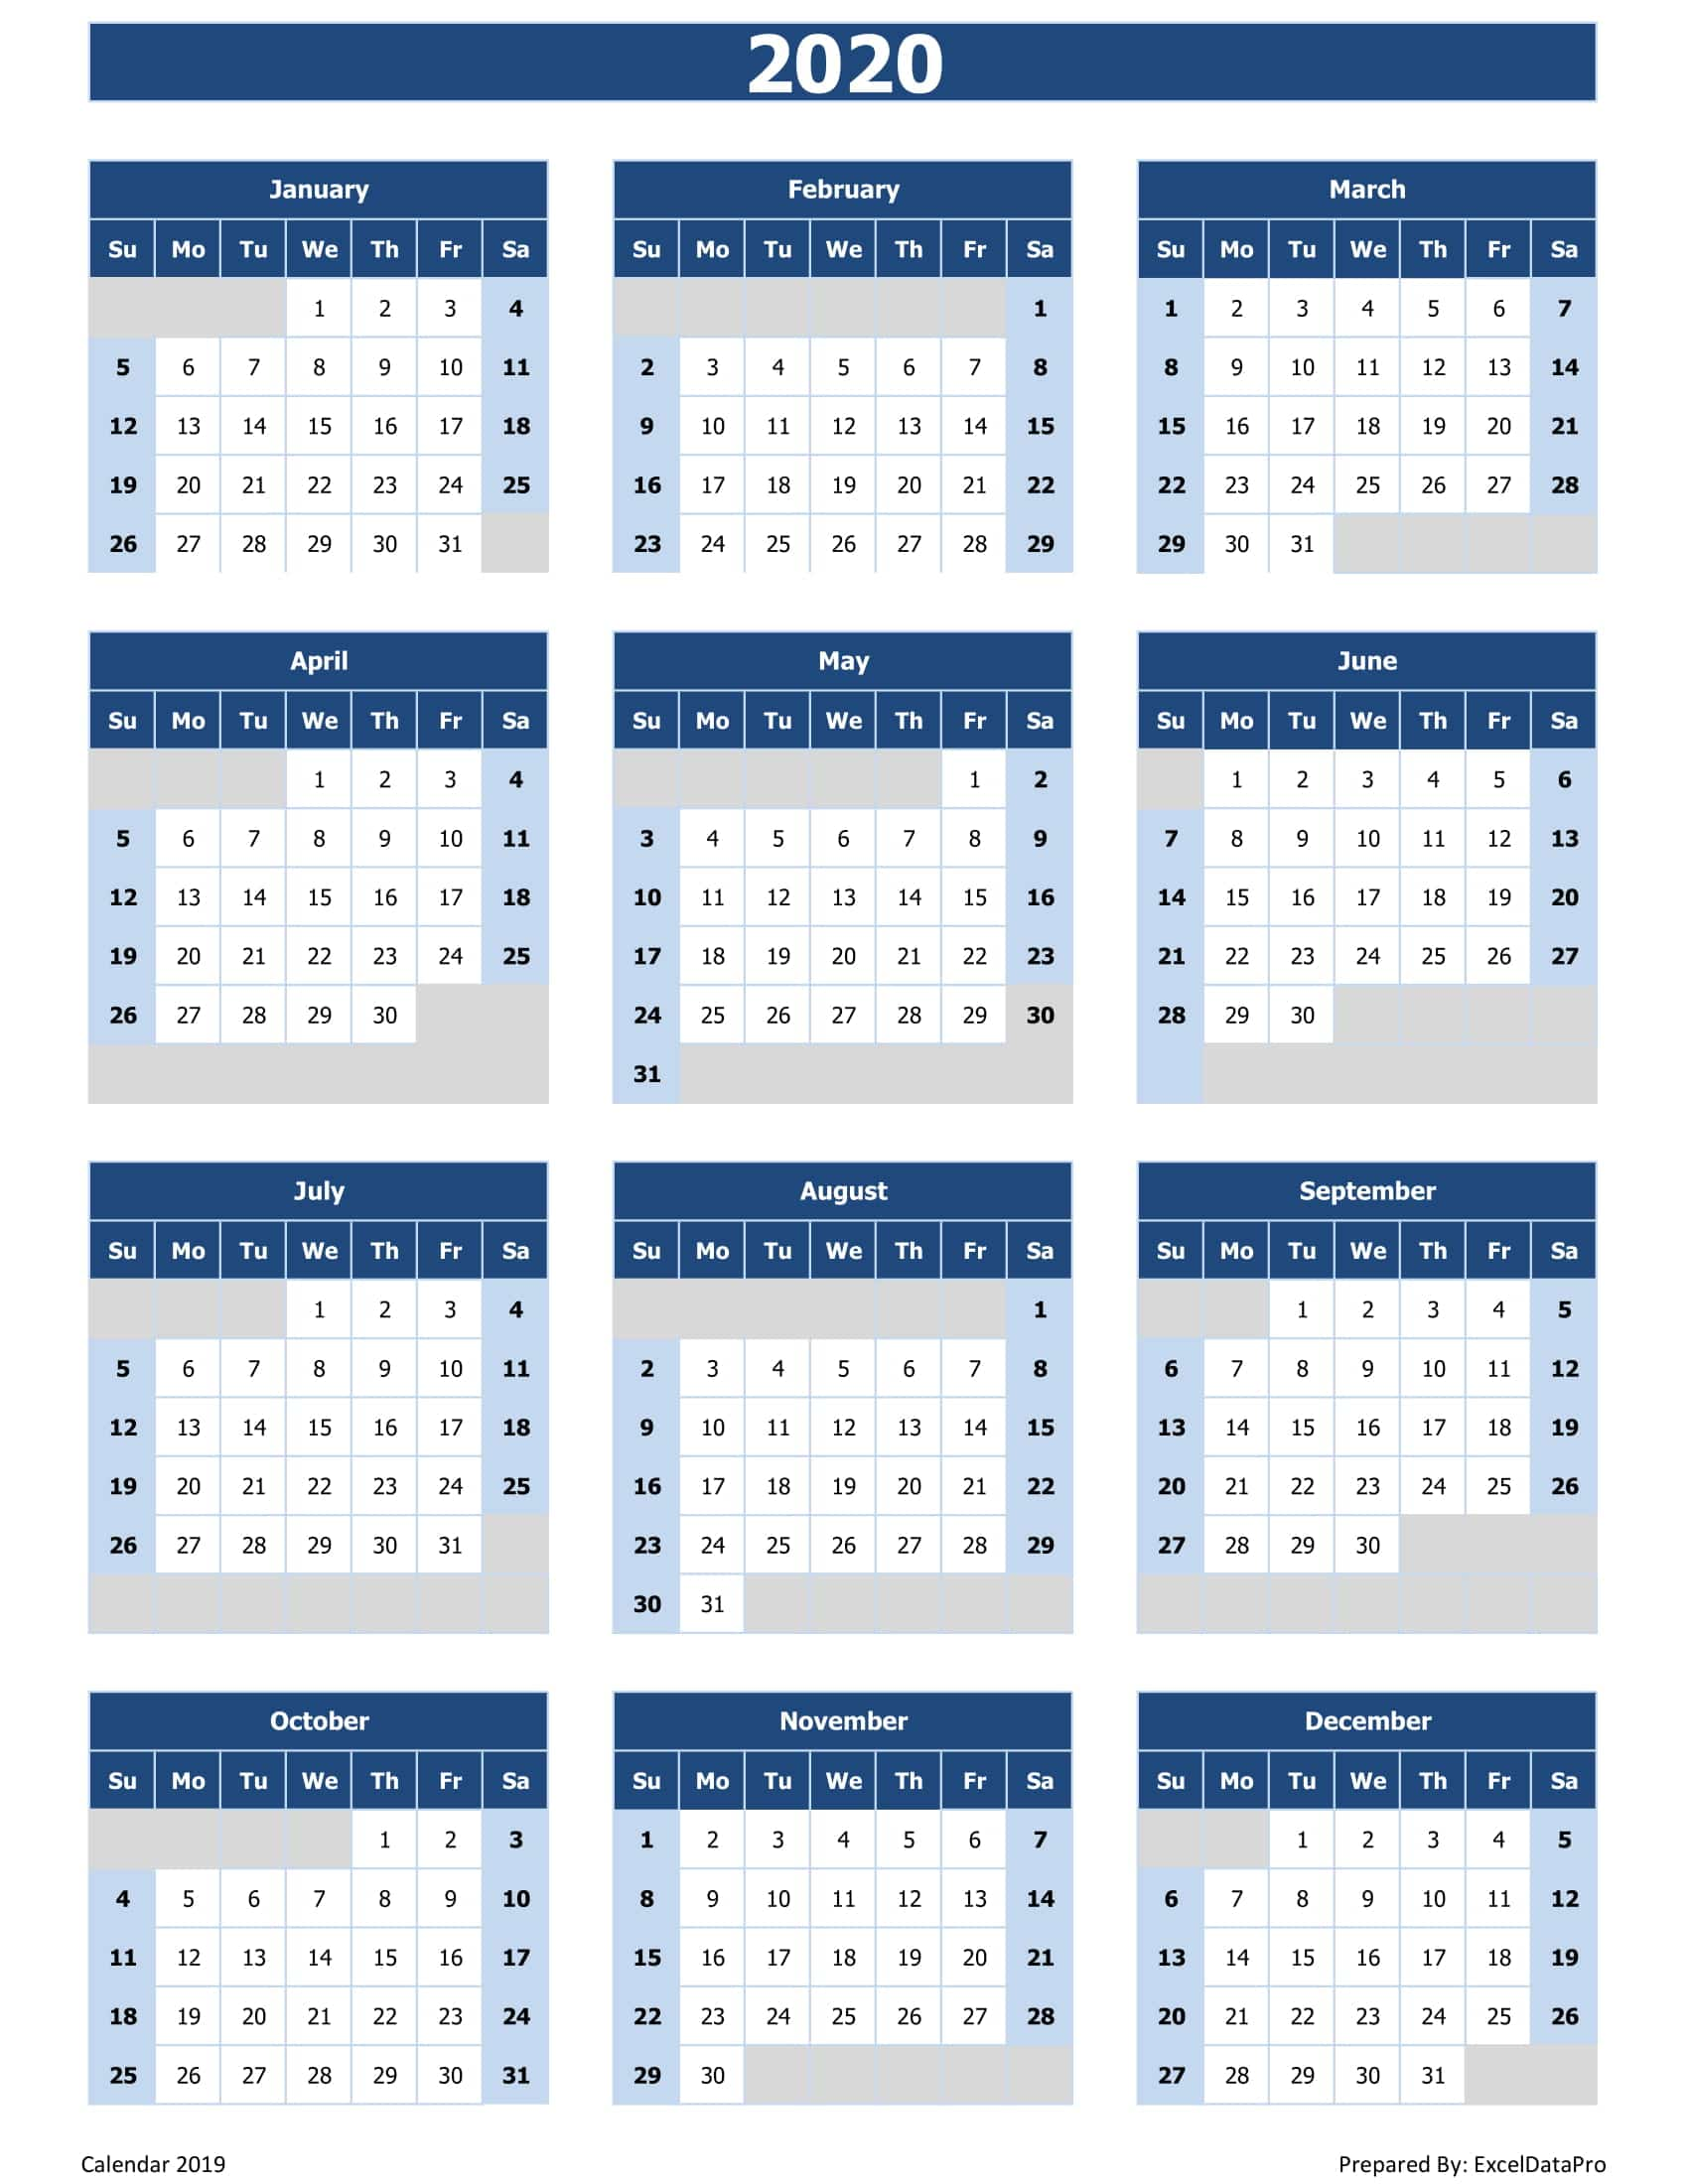 Free Excel Calendar 2020 2020 Calendar Excel Templates, Printable PDFs & Images   ExcelDataPro